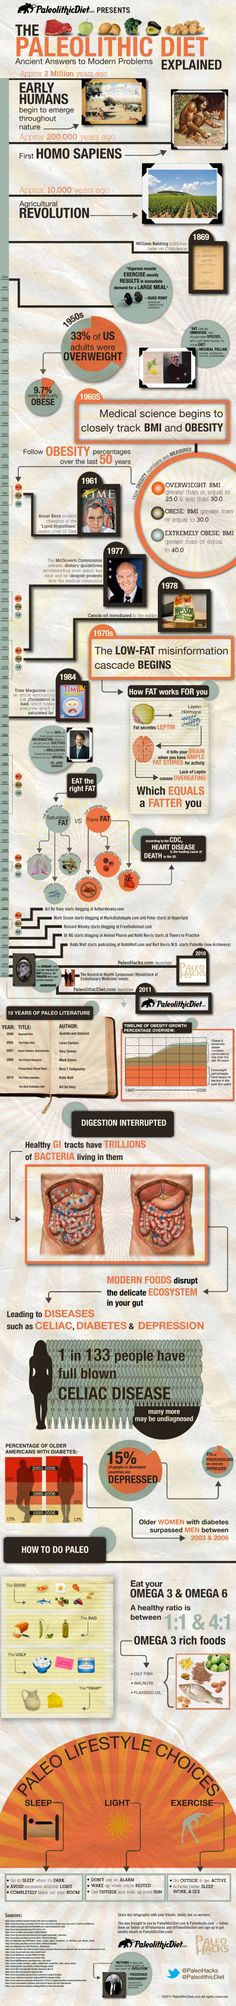 The Old School Diet [infographic] | Daily Infographic